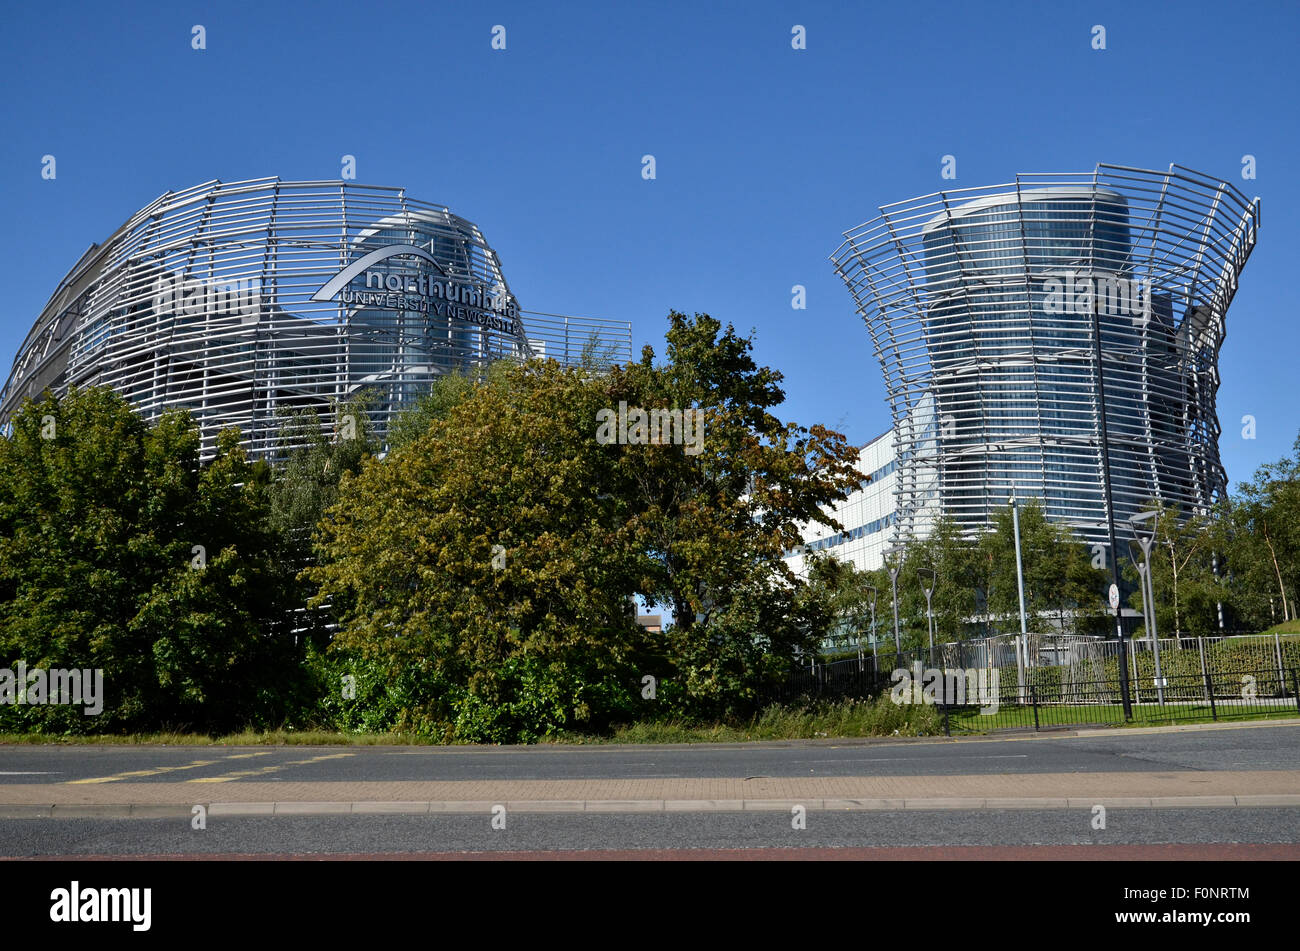 Northumbria University on City Road in Newcastle Upon Tyne - Stock Image